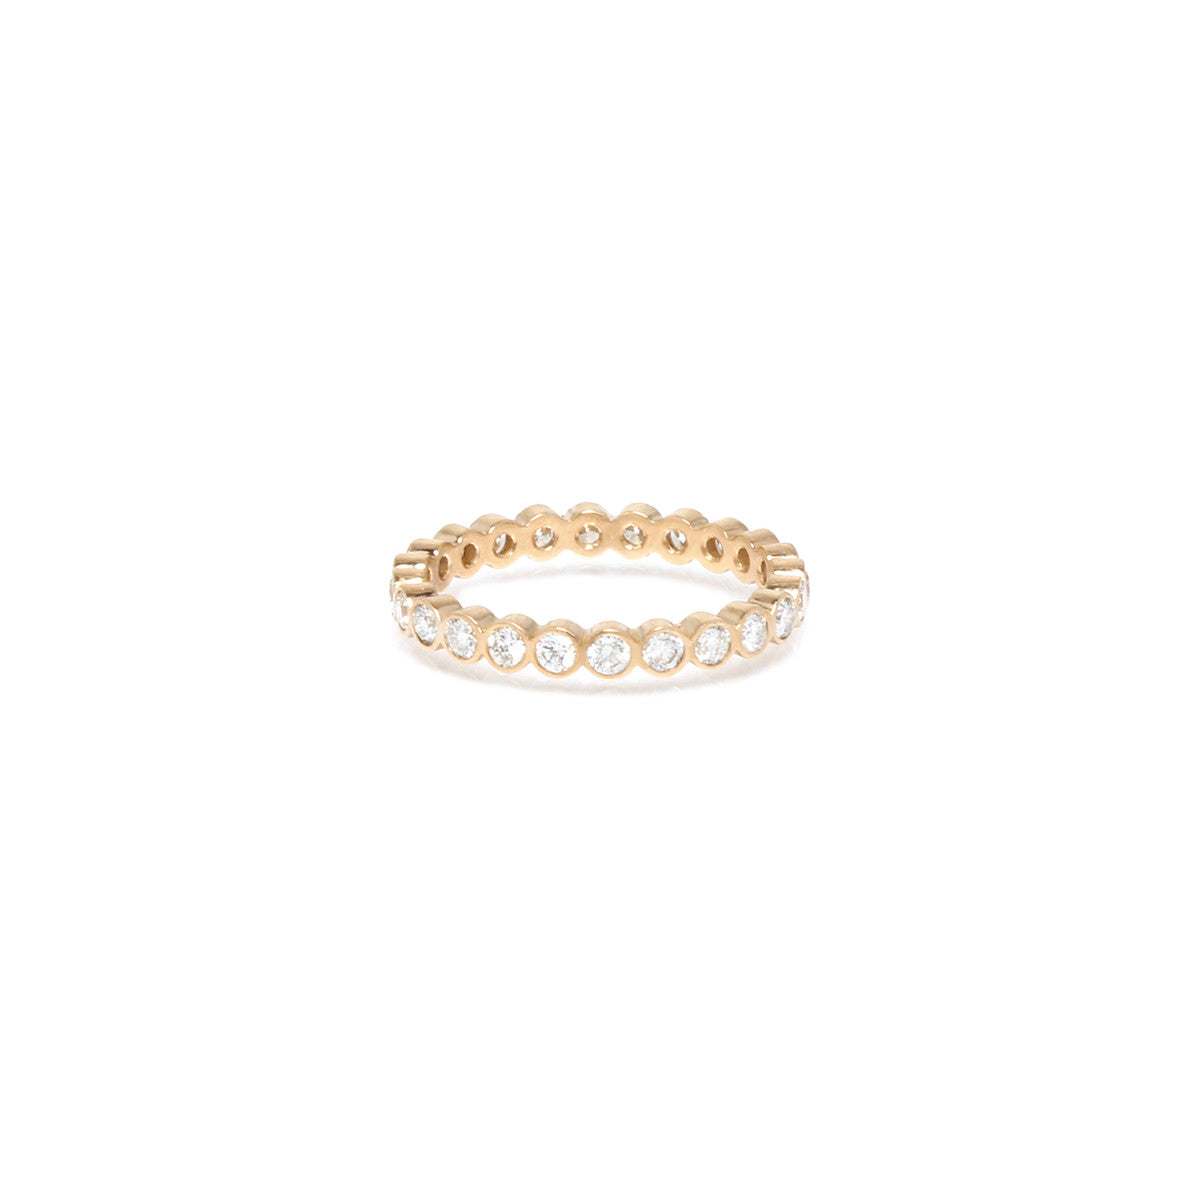 Zoë Chicco 14kt Yellow Gold 3pt Bezel Set White Diamond Eternity Band Ring